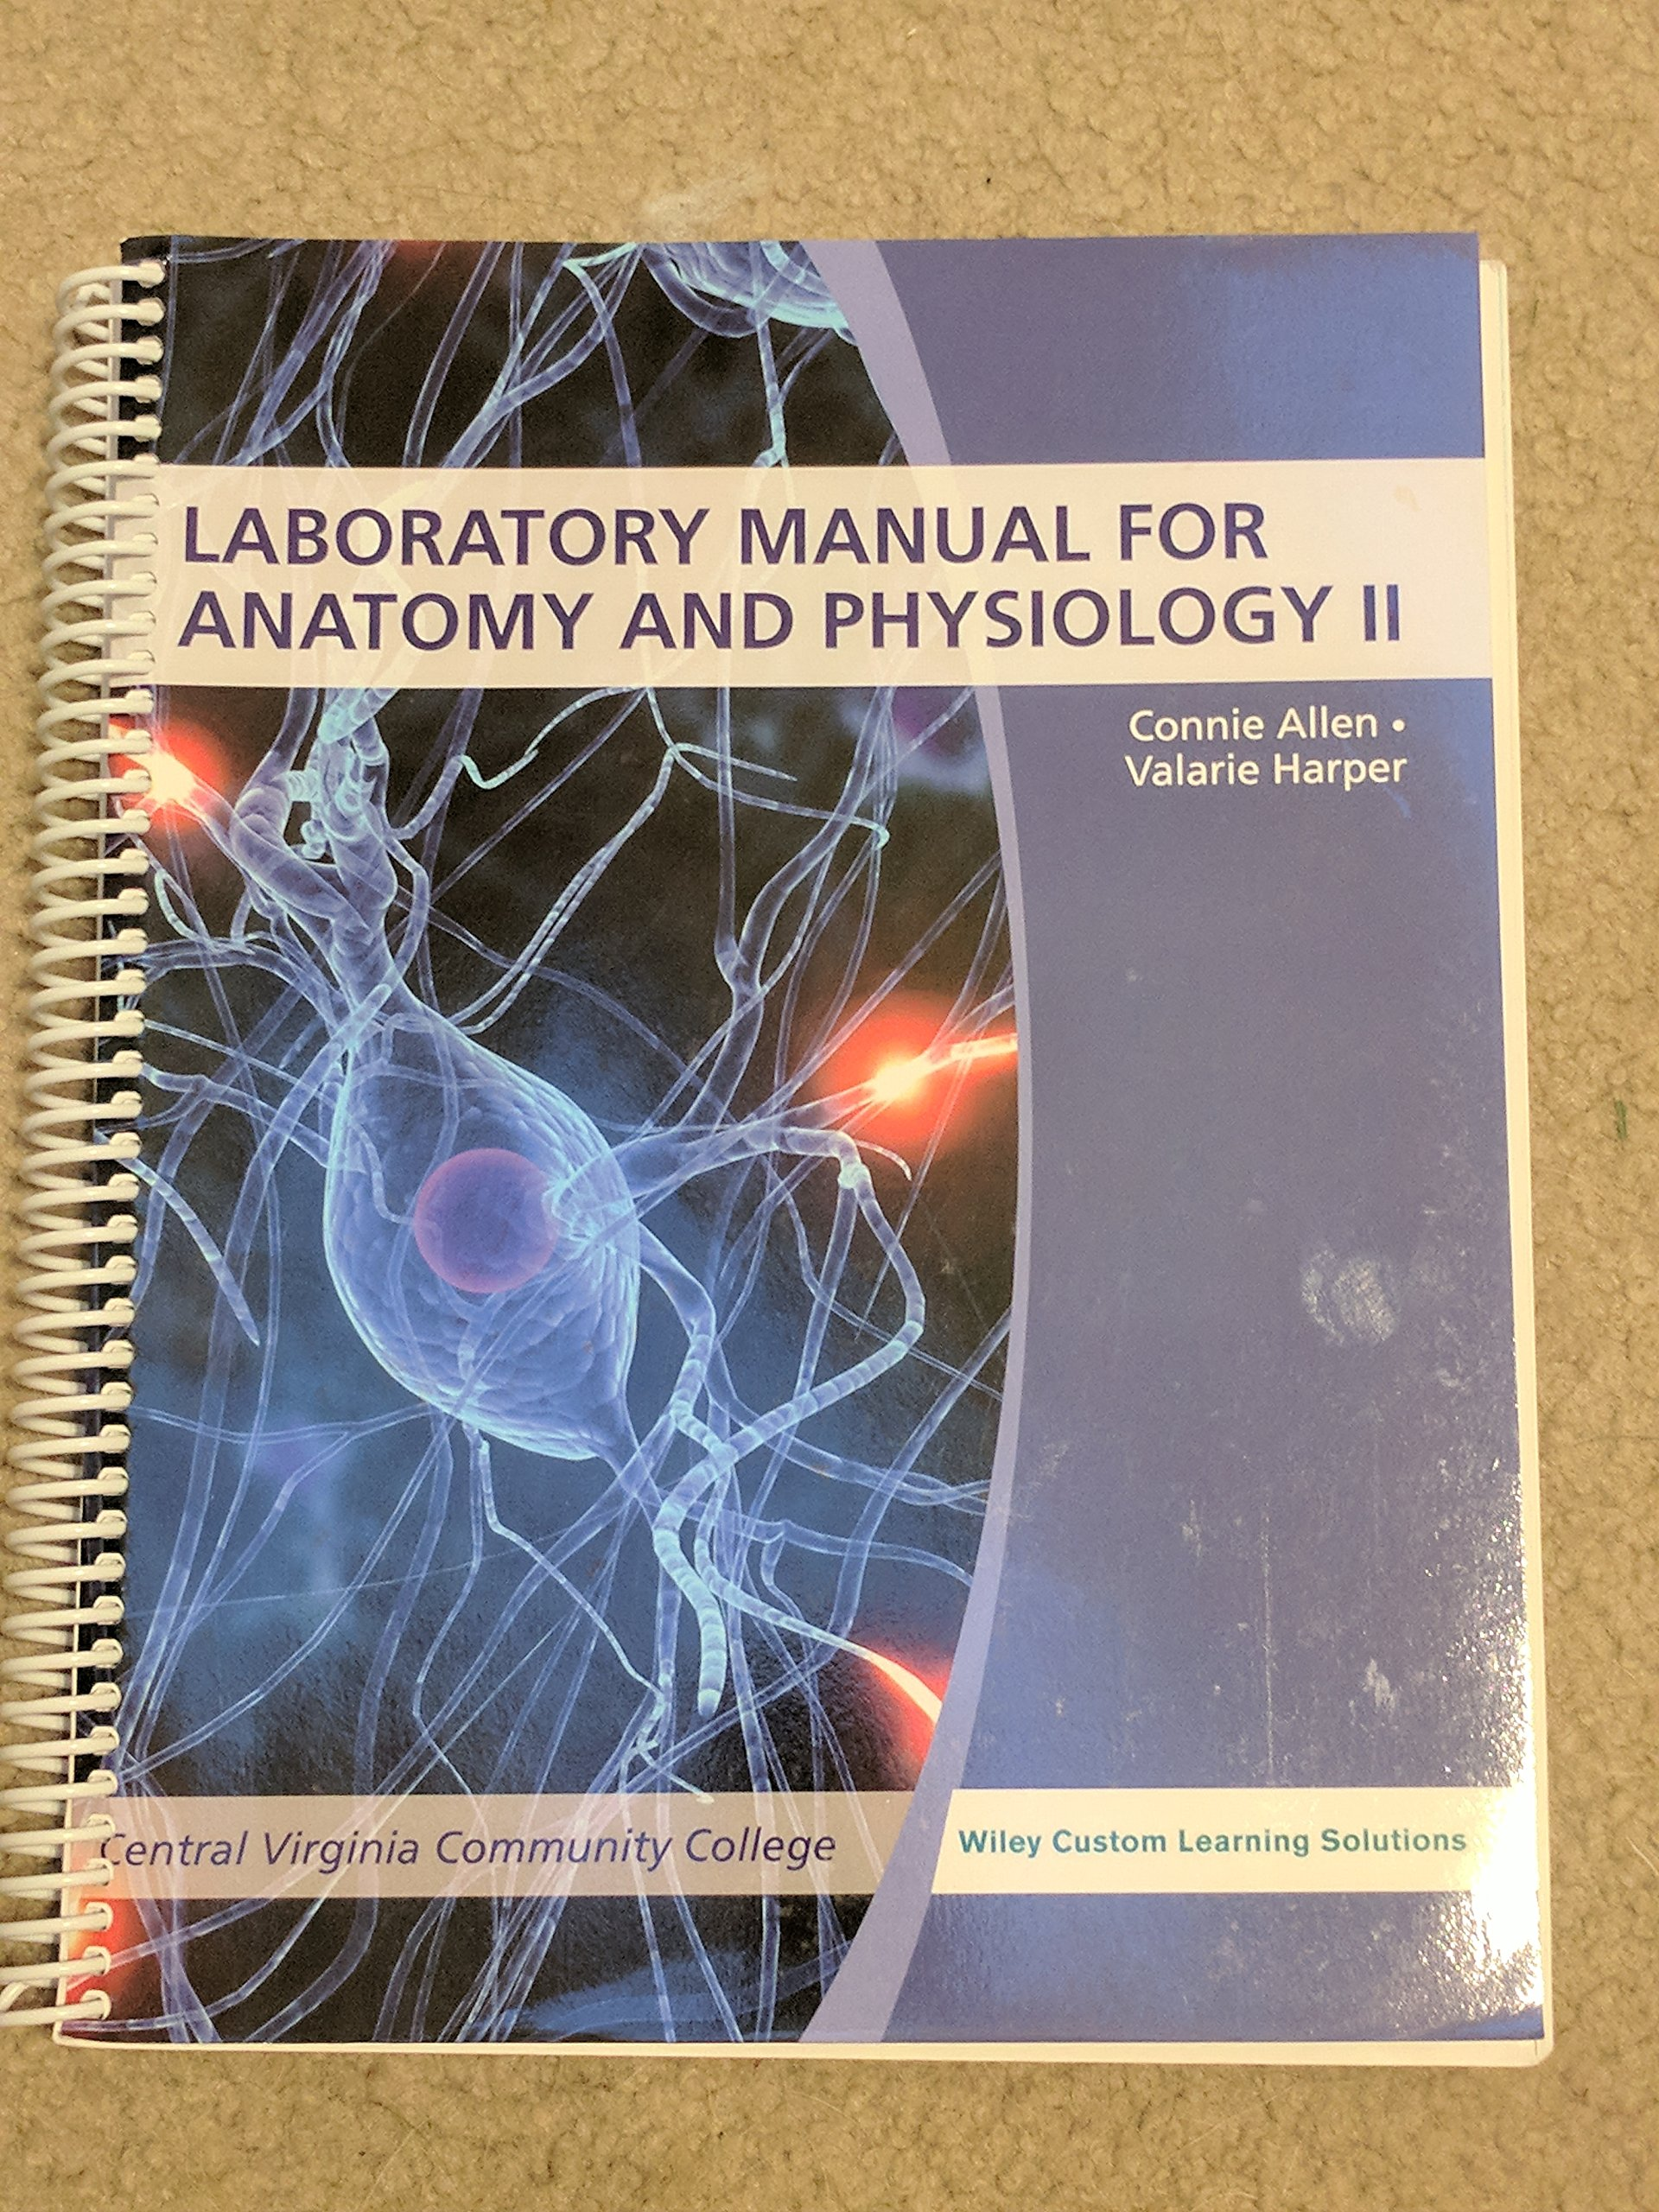 CVCC Laboratory Manual for Anatomy and Physiology - Volume II Fifth  Edition: Wiley Custom Learning Solutions, Connie Allen, Valerie Harper:  9781118972779: ...